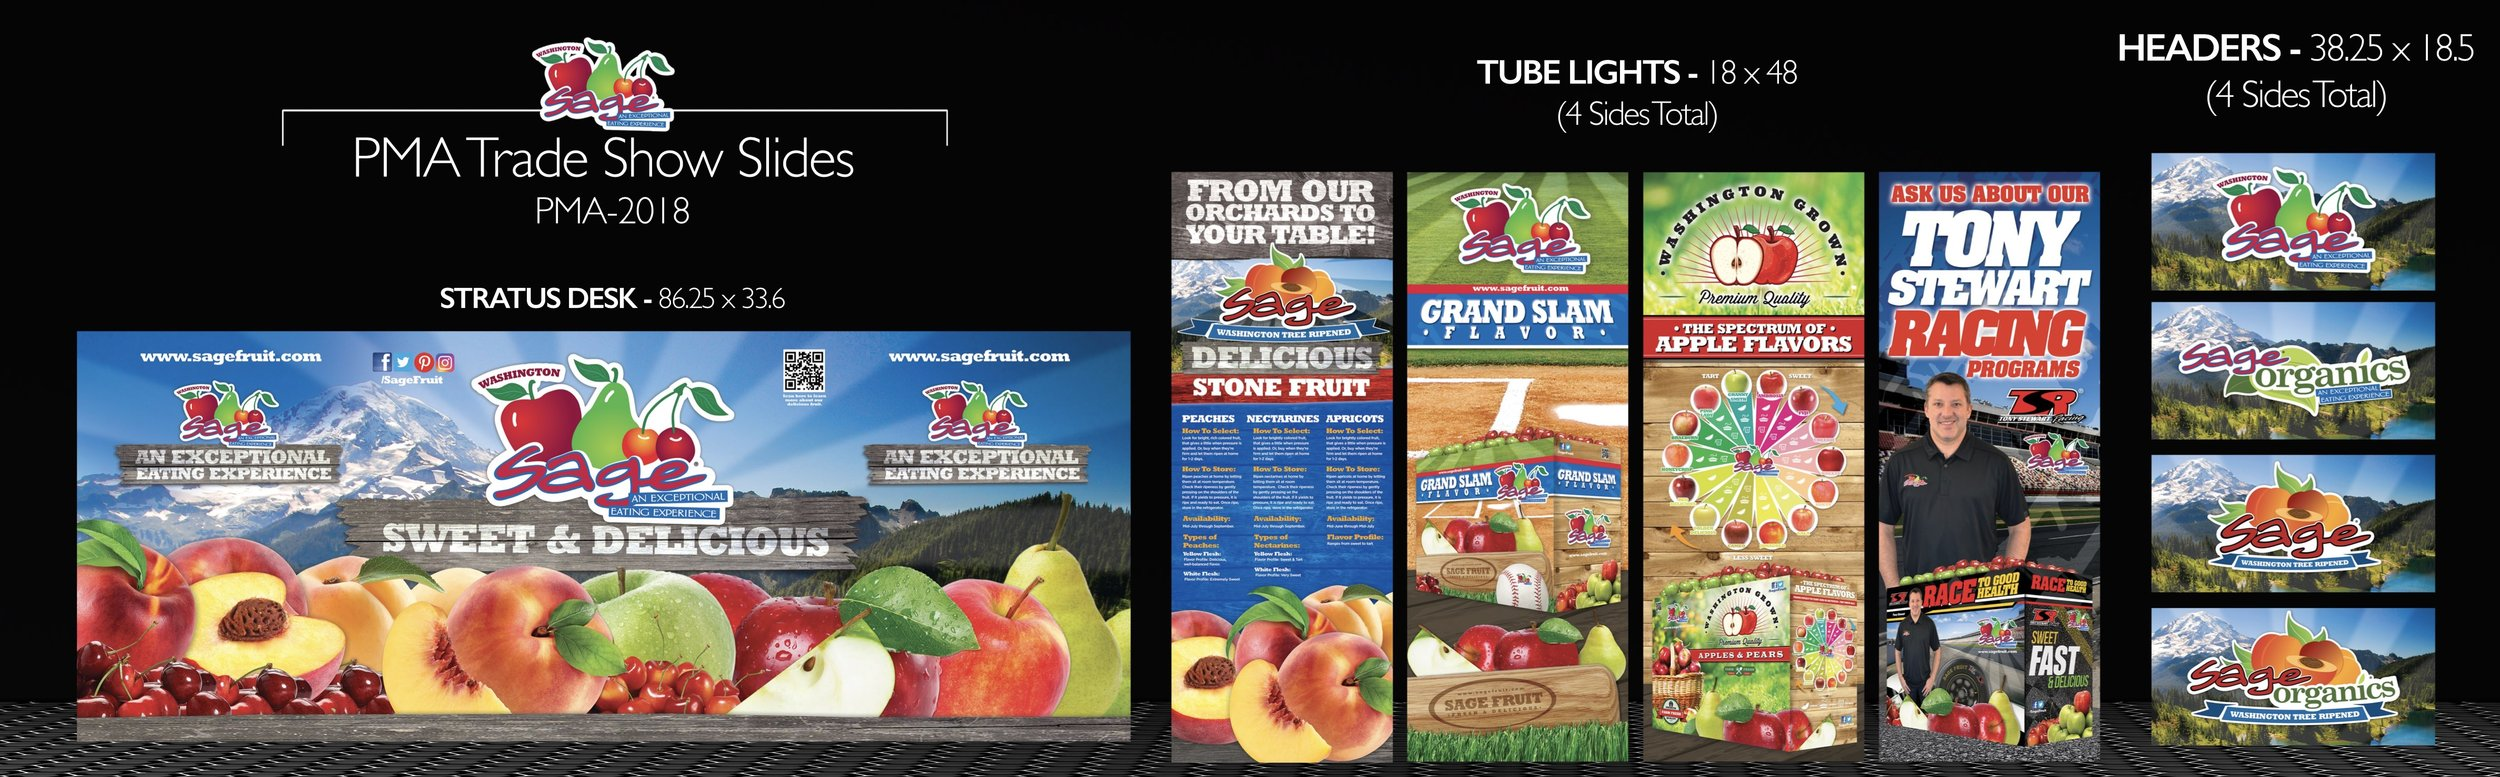 Trade show panel design for Sage Fruit Company and use at their annual PMA trade show event booth.